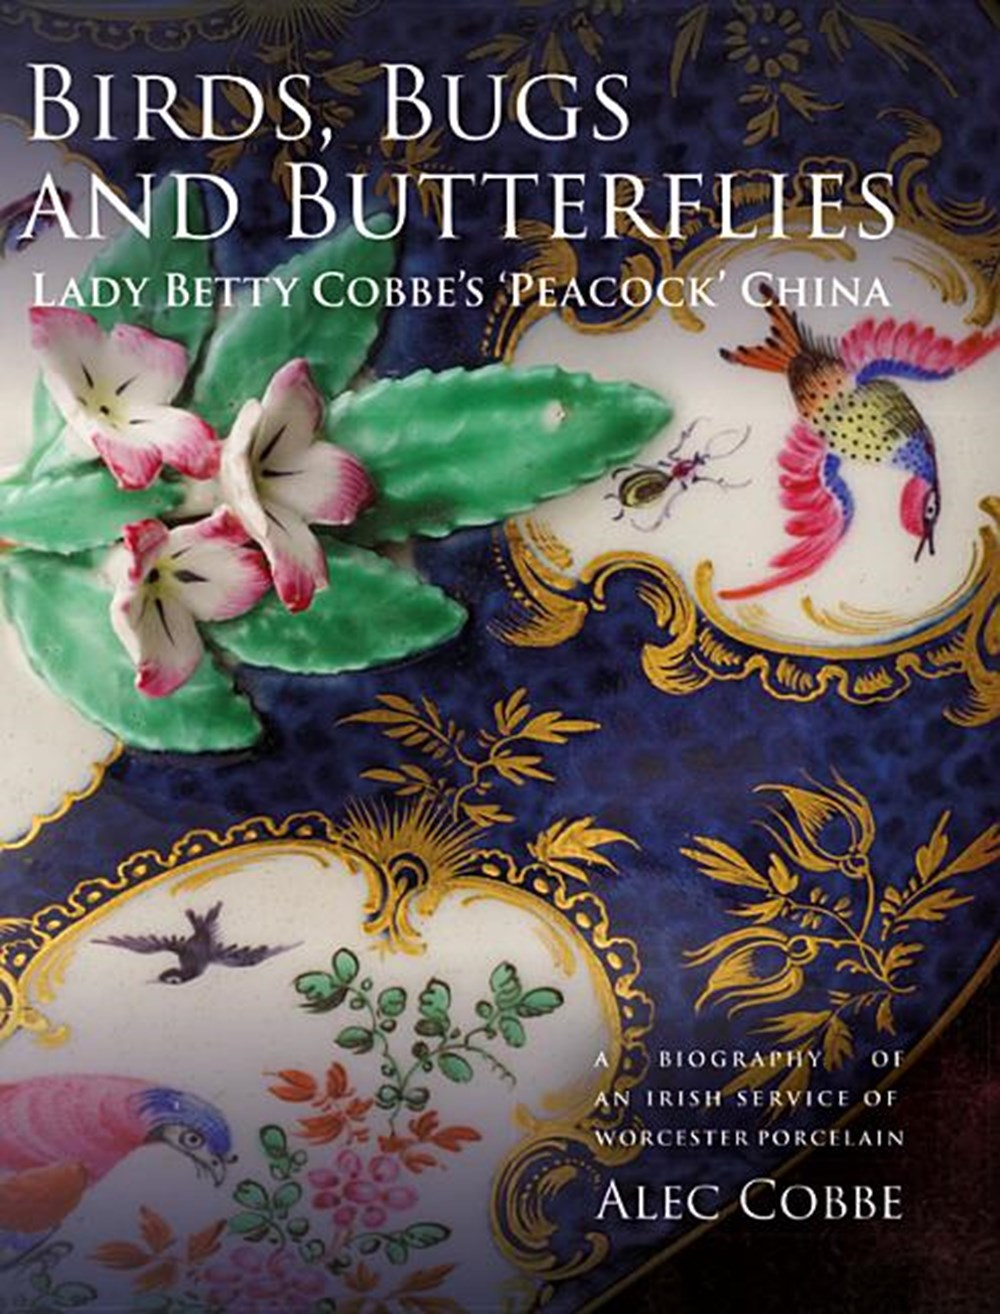 Birds, Bugs and Butterflies Lady Betty Cobbe's 'peacock' China: A Biography of an Irish Service of W